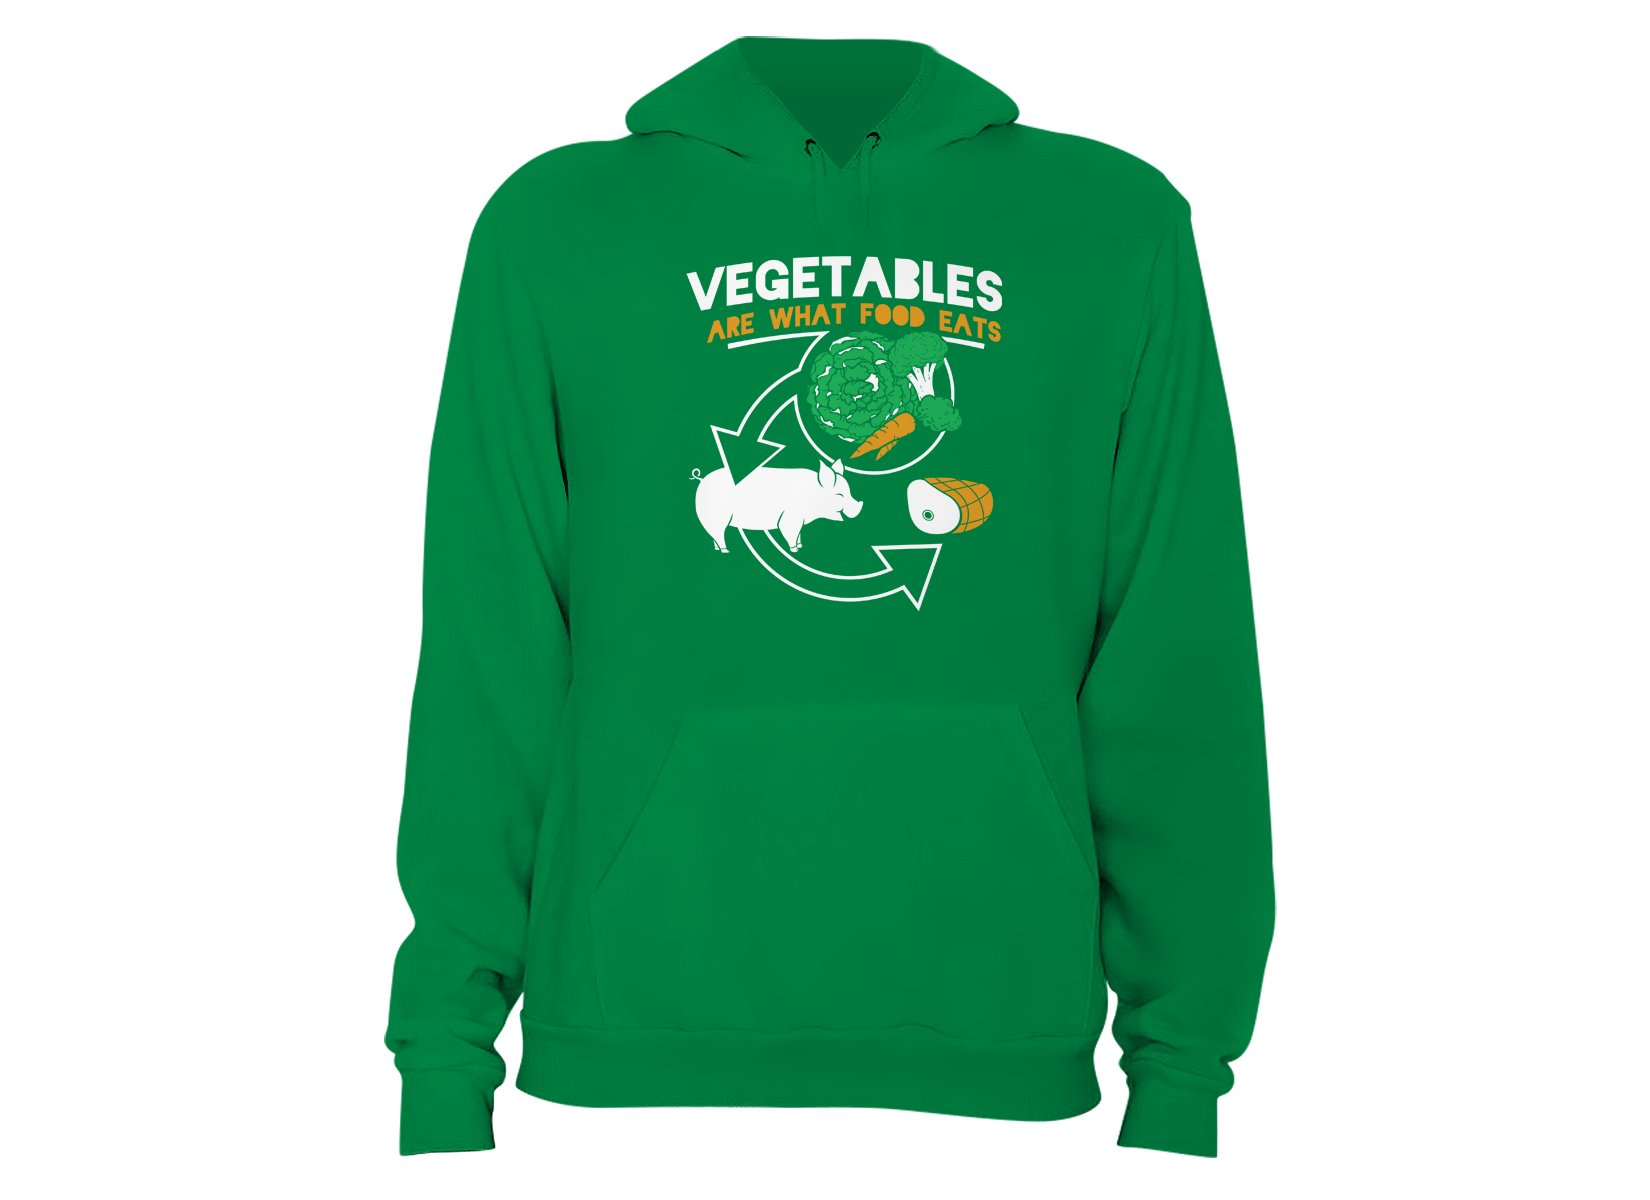 Vegetables Are What Food Eats on Hoodie